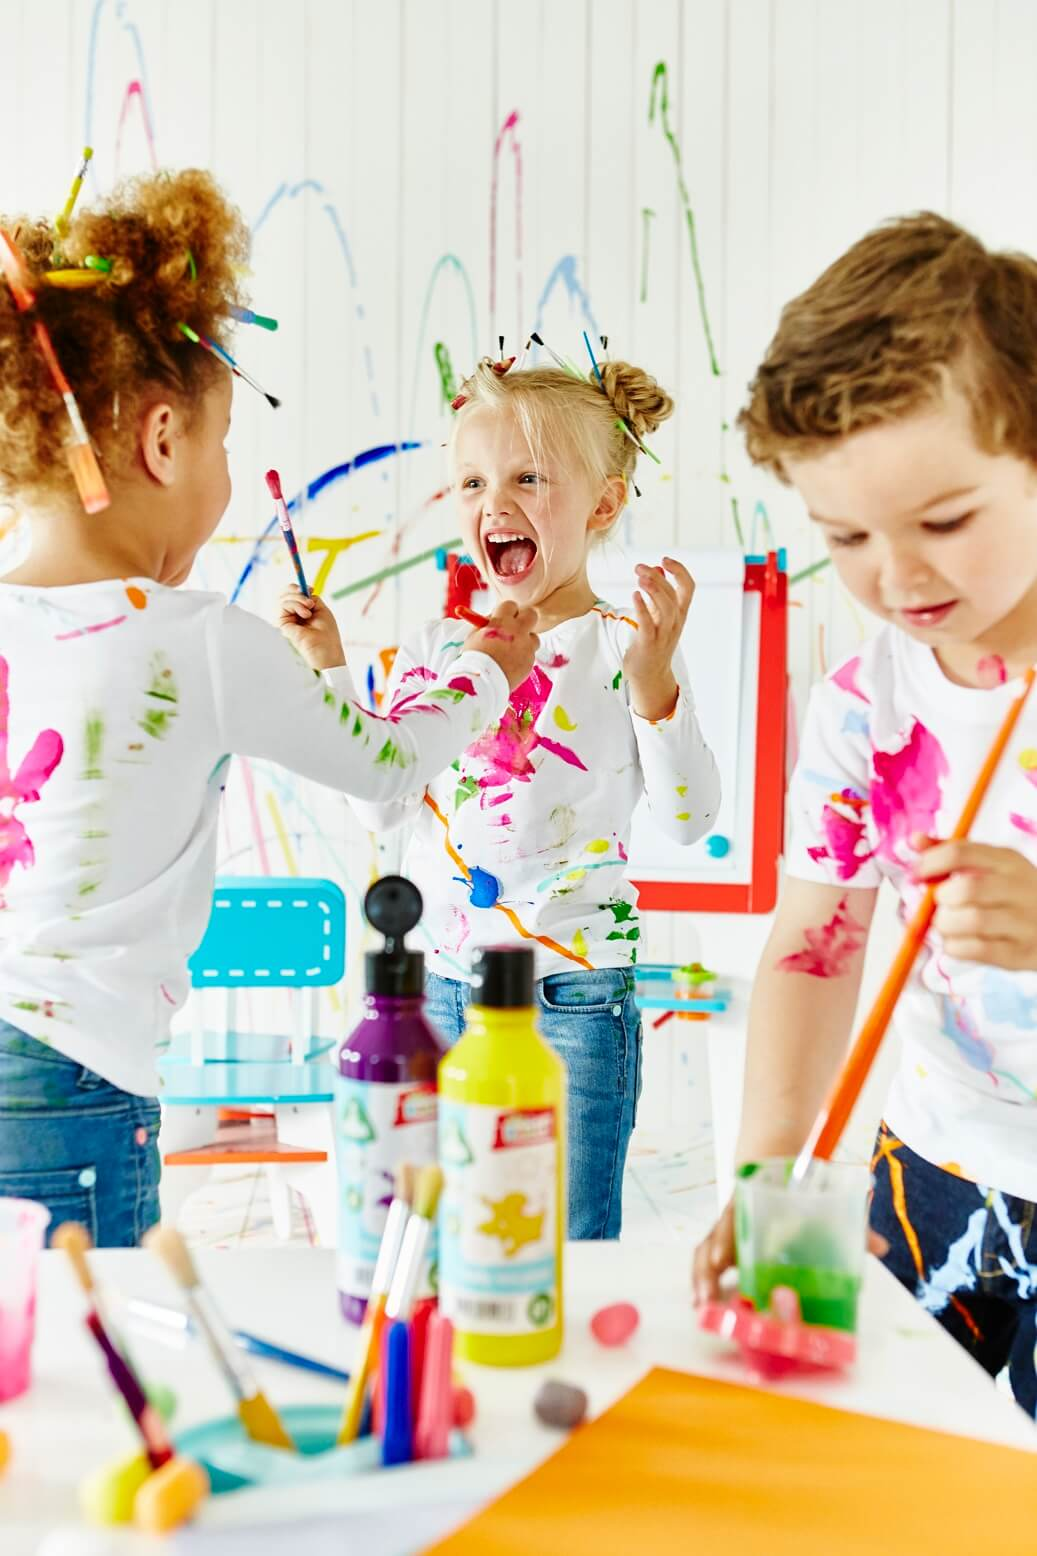 5 things to consider when choosing a toy for your child